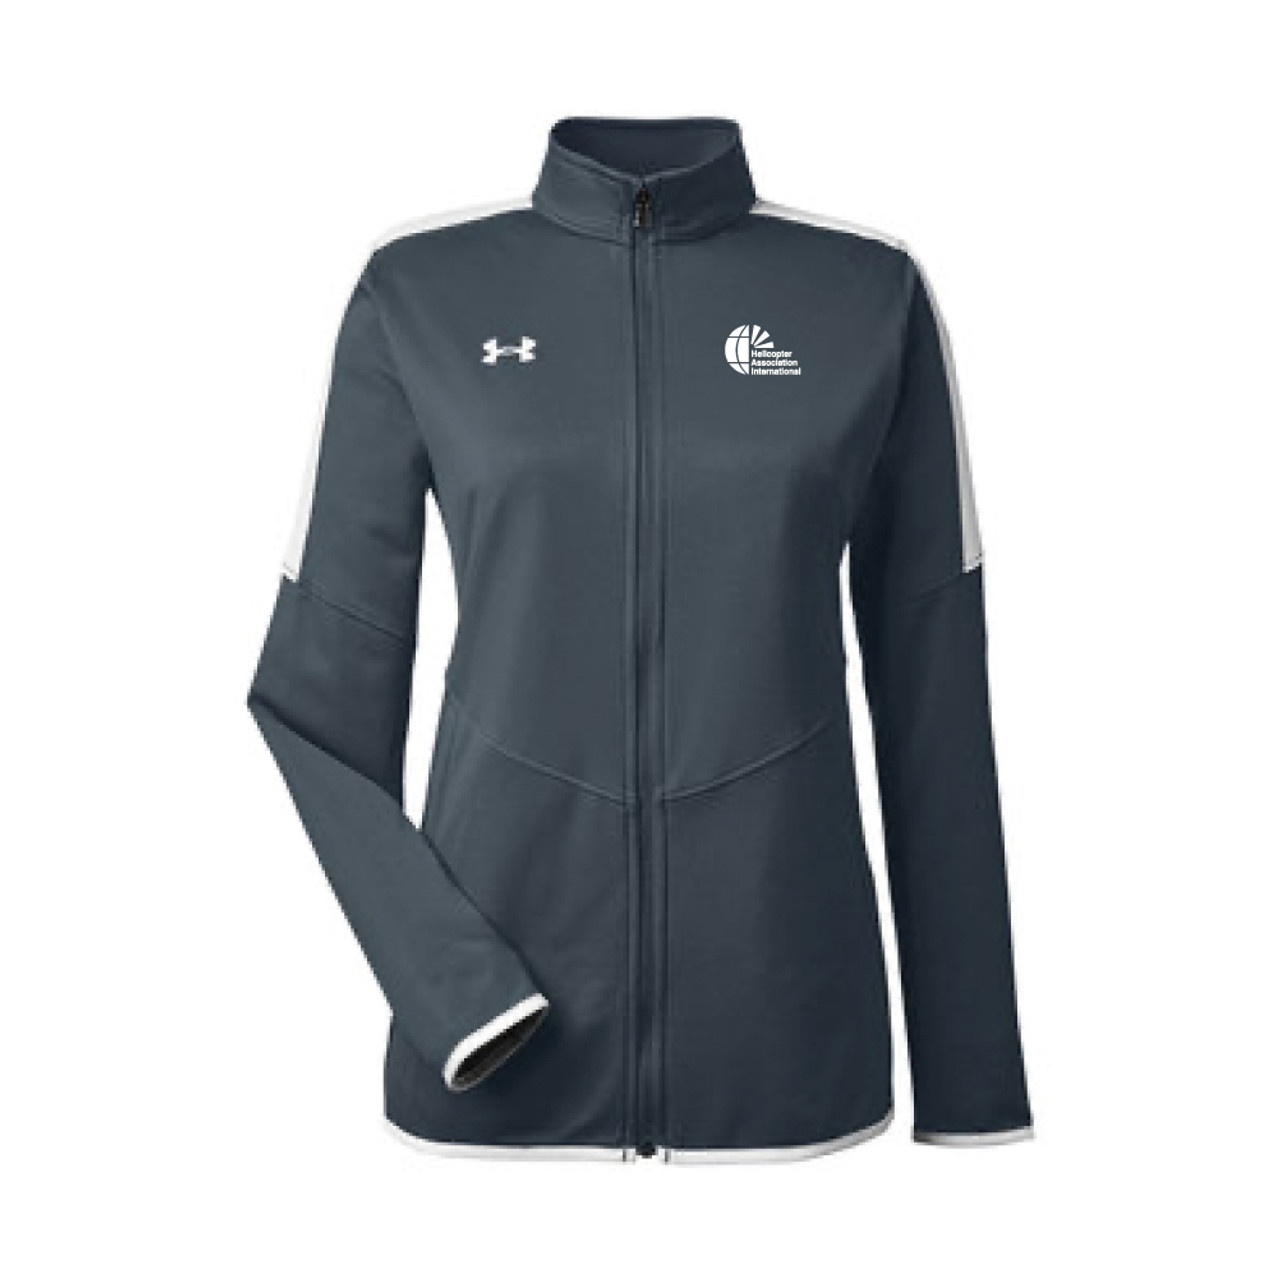 Ladies Under Armour Charcoal Knit Full Zip Jacket